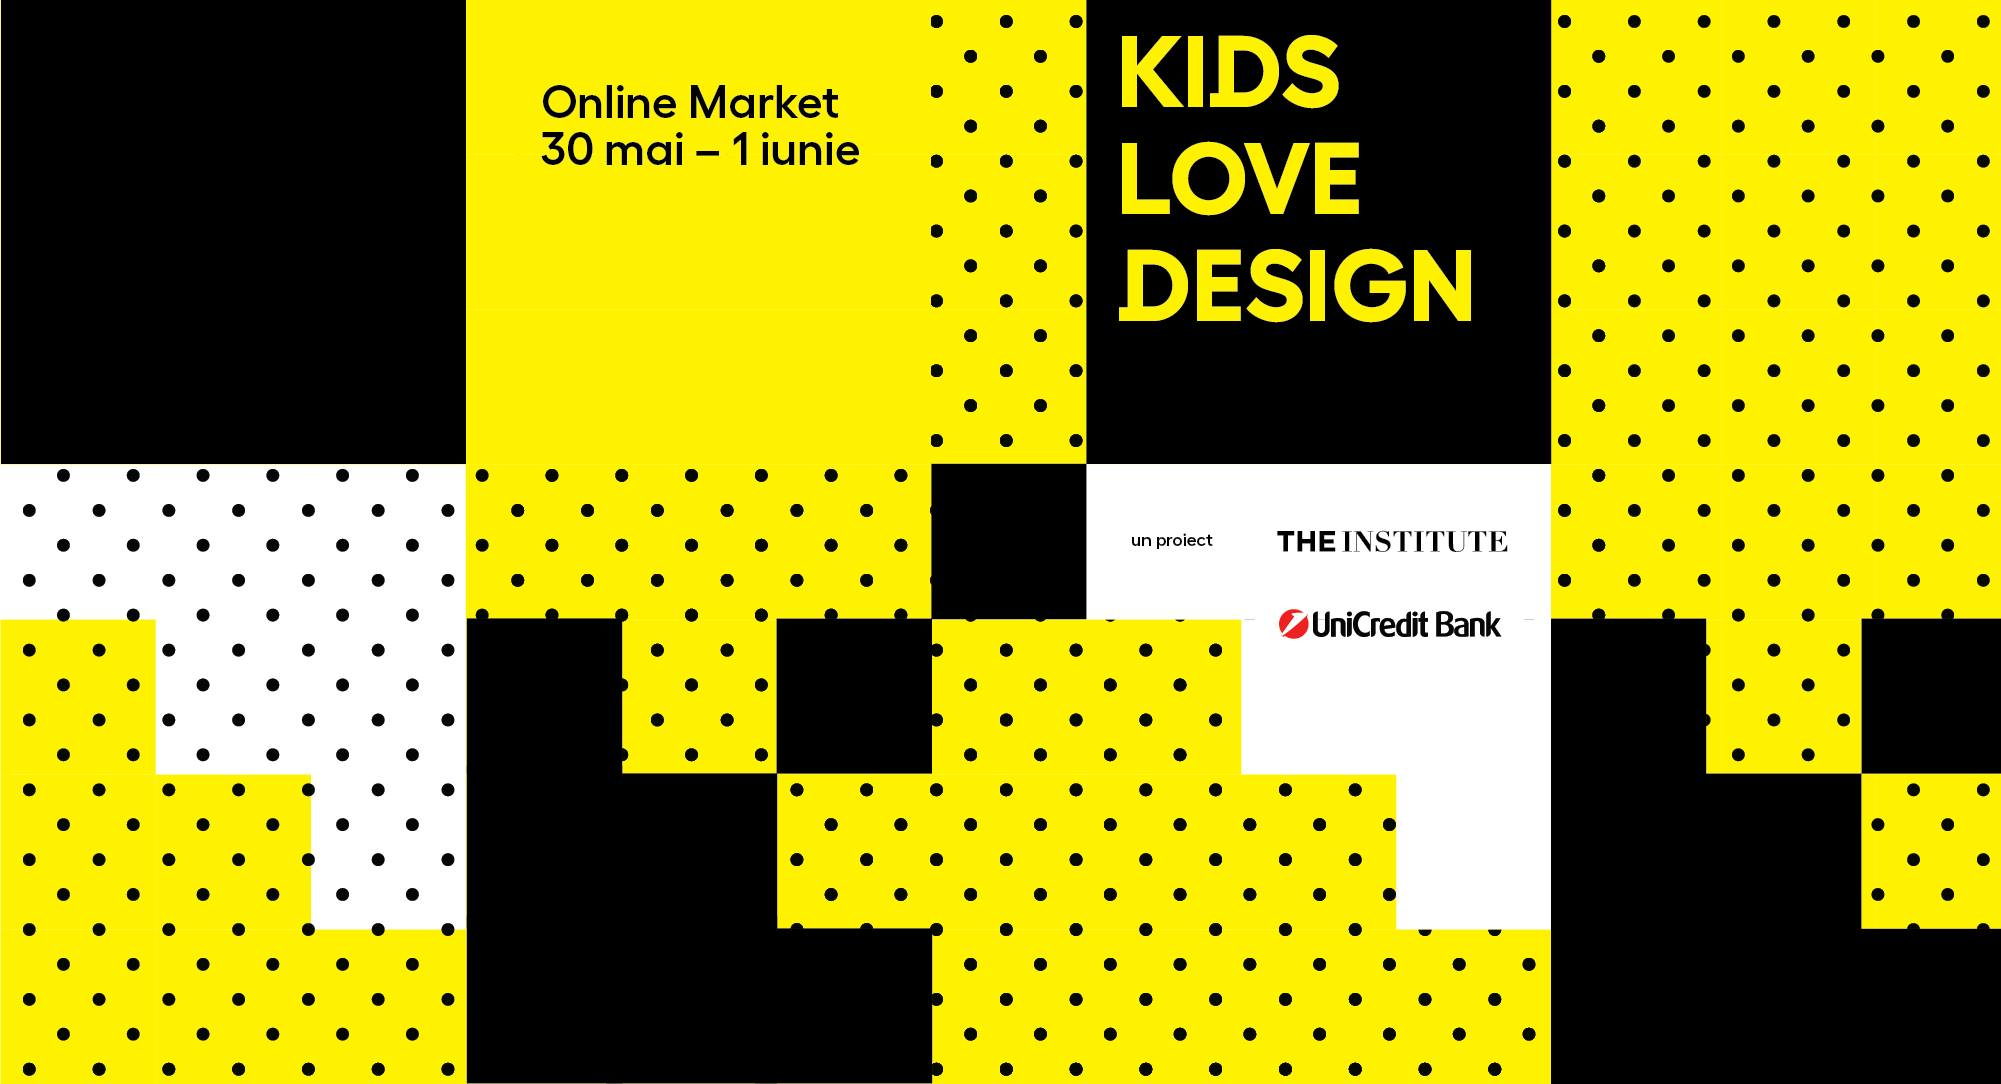 KIDS LOVE DESIGN Online Market